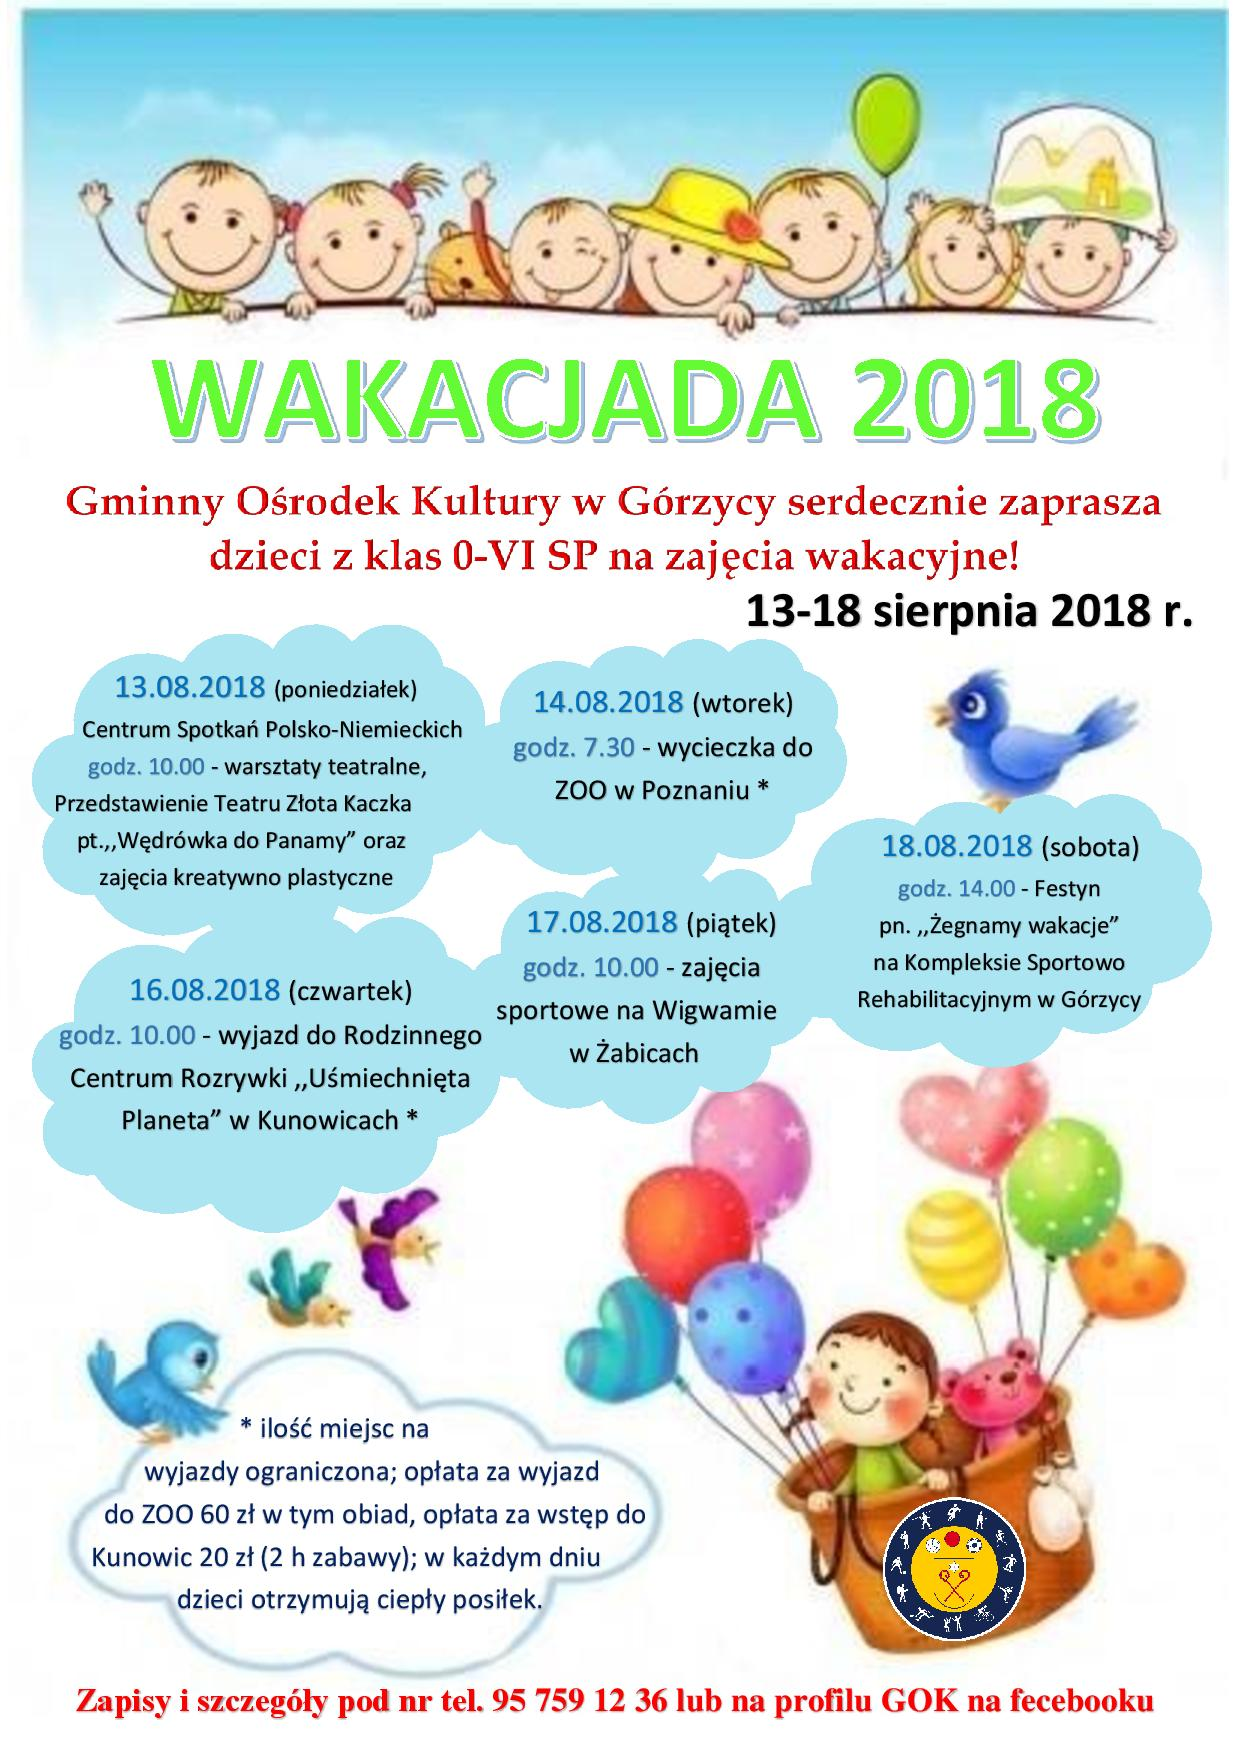 You are browsing images from the article: Wakacjada 2018